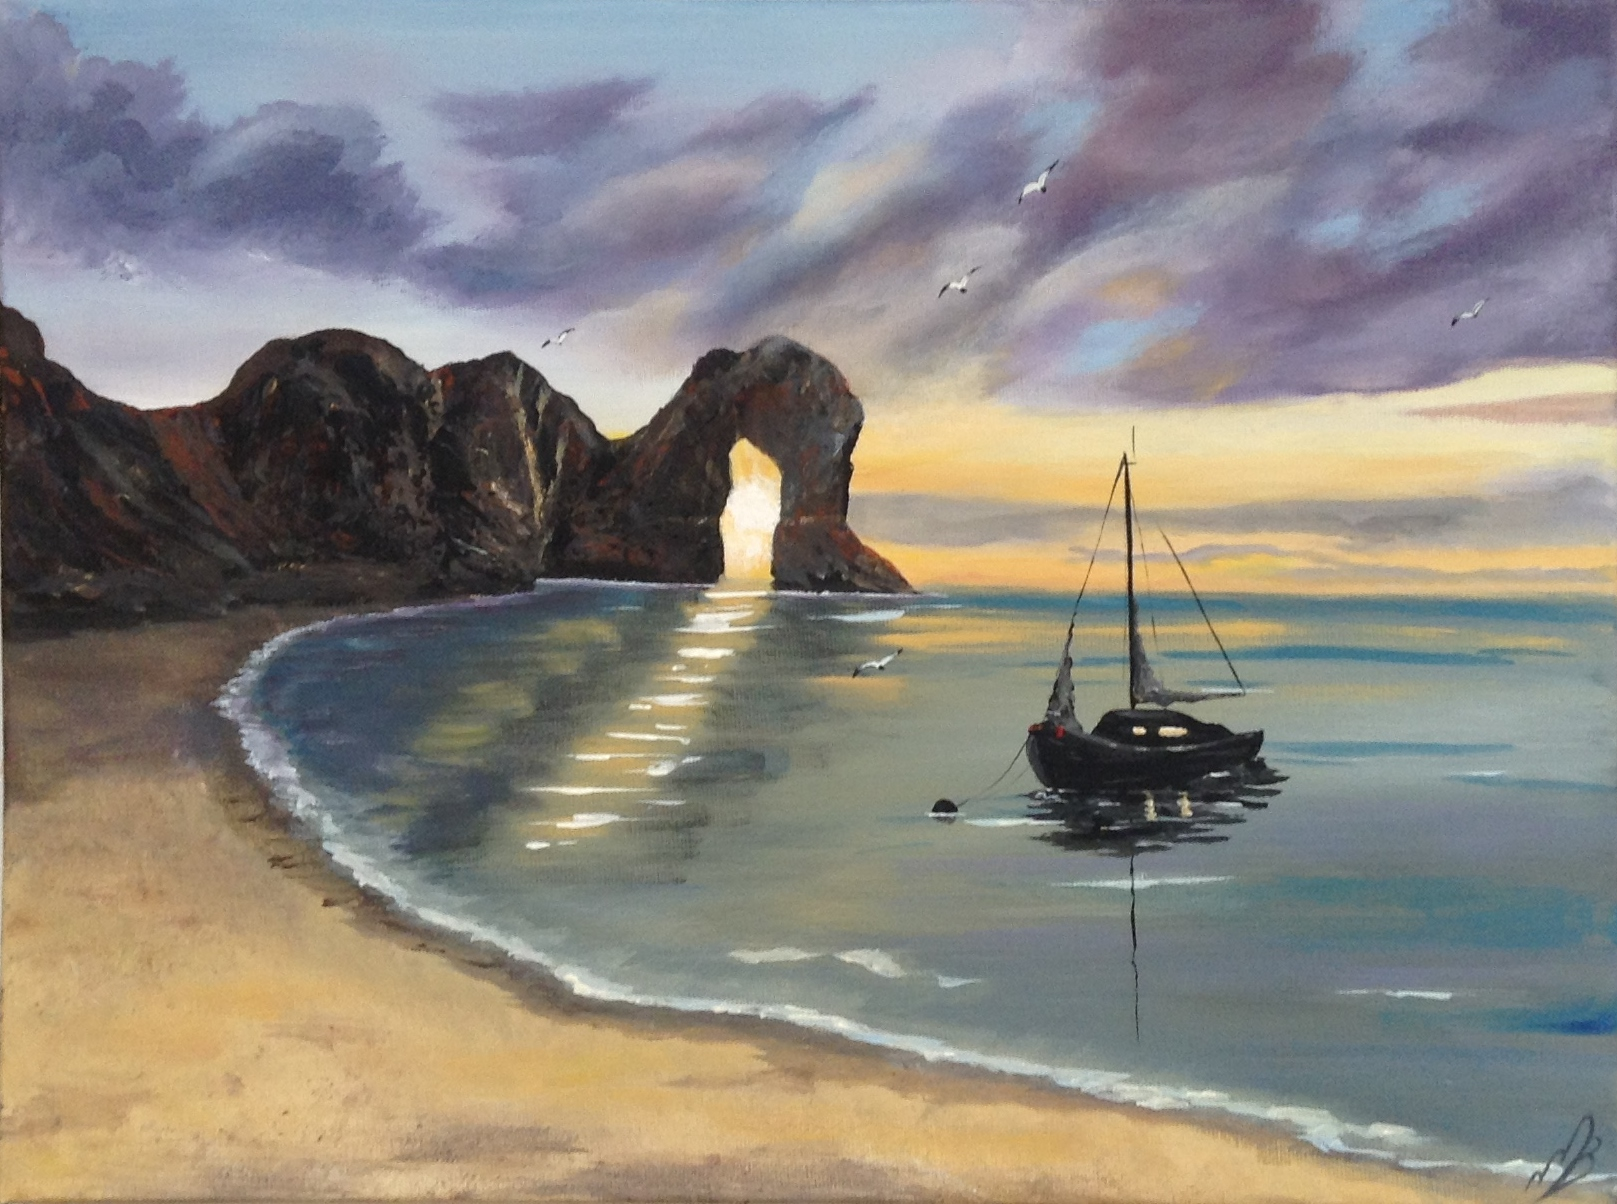 & Morning Light over Durdle Door by Marja Brown pezcame.com